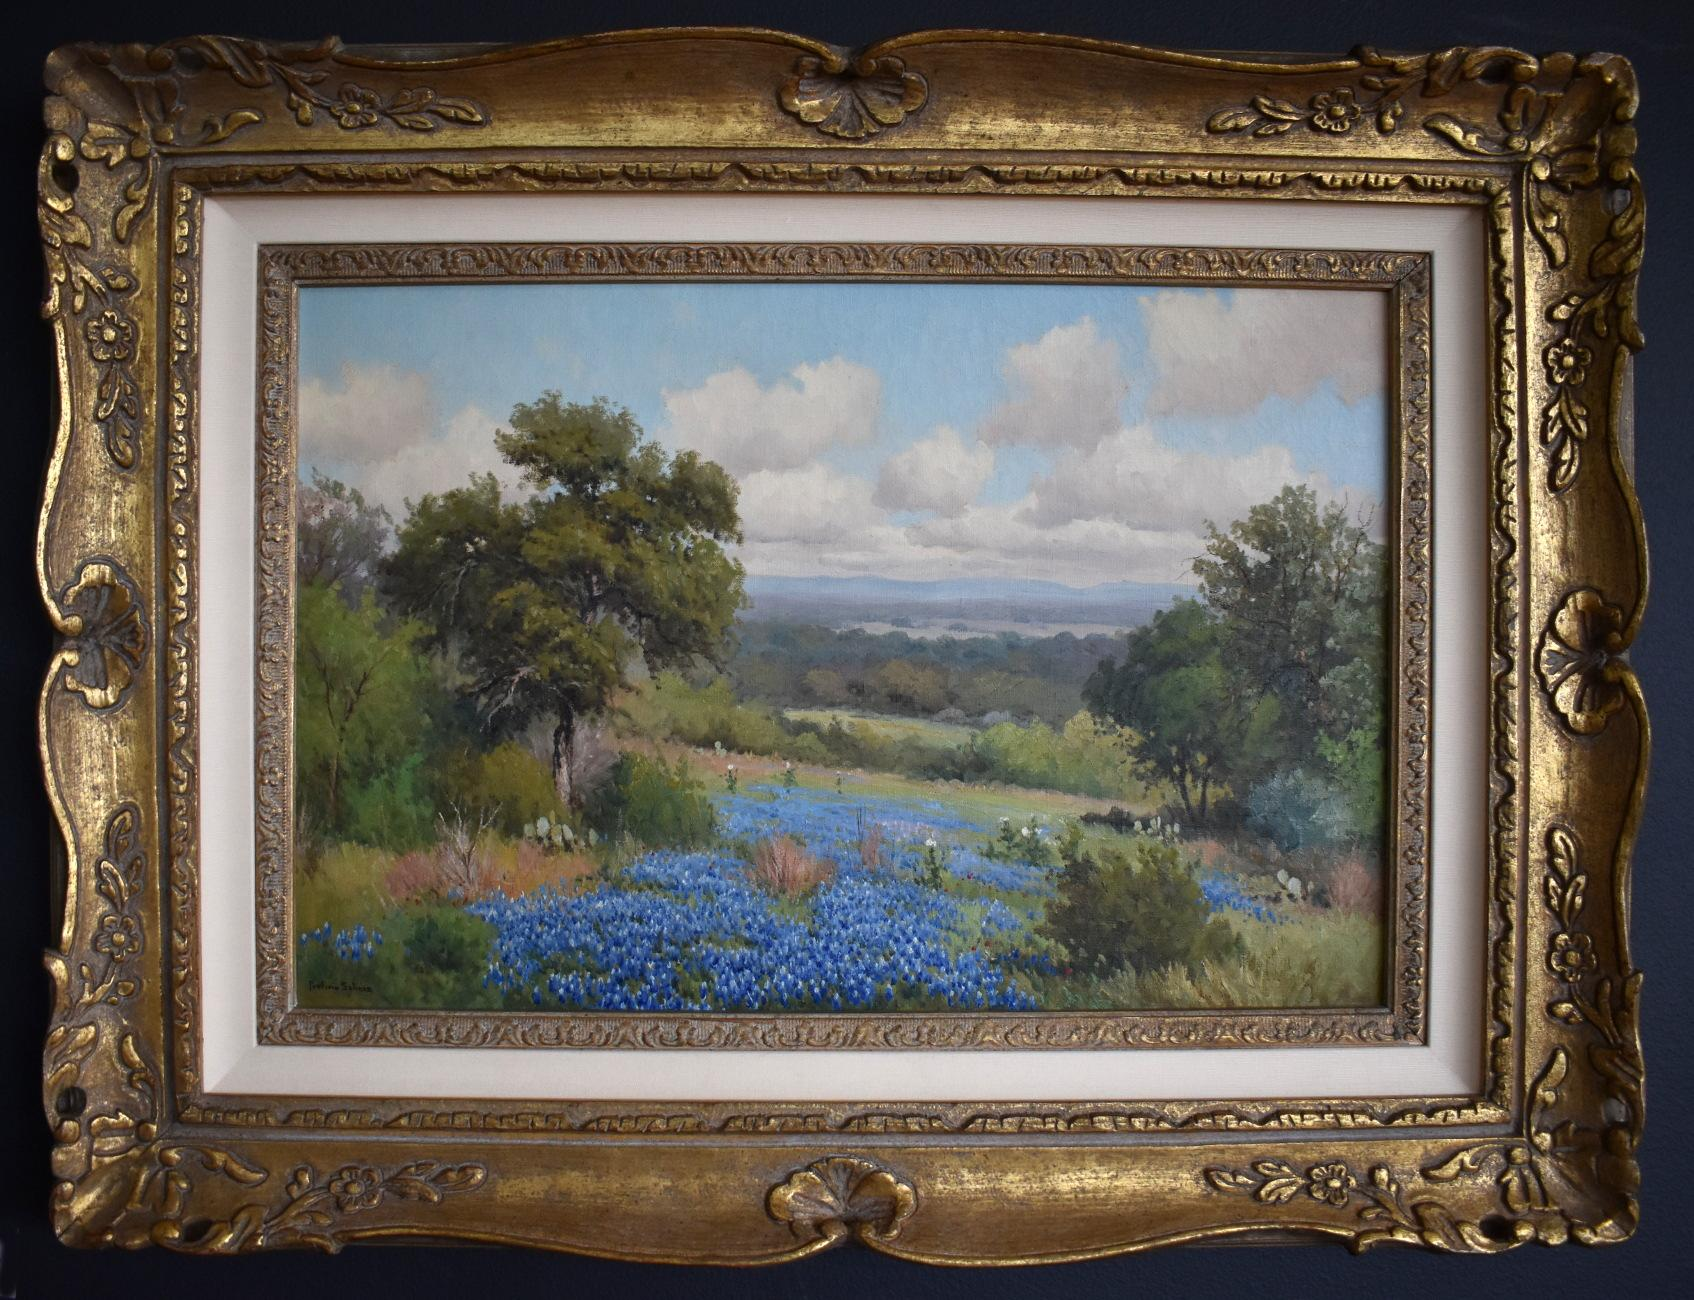 """"""" HILL COUNTRY BLUE """"  TEXAS HILL COUNTRY LANDSCAPE PAINTING"""